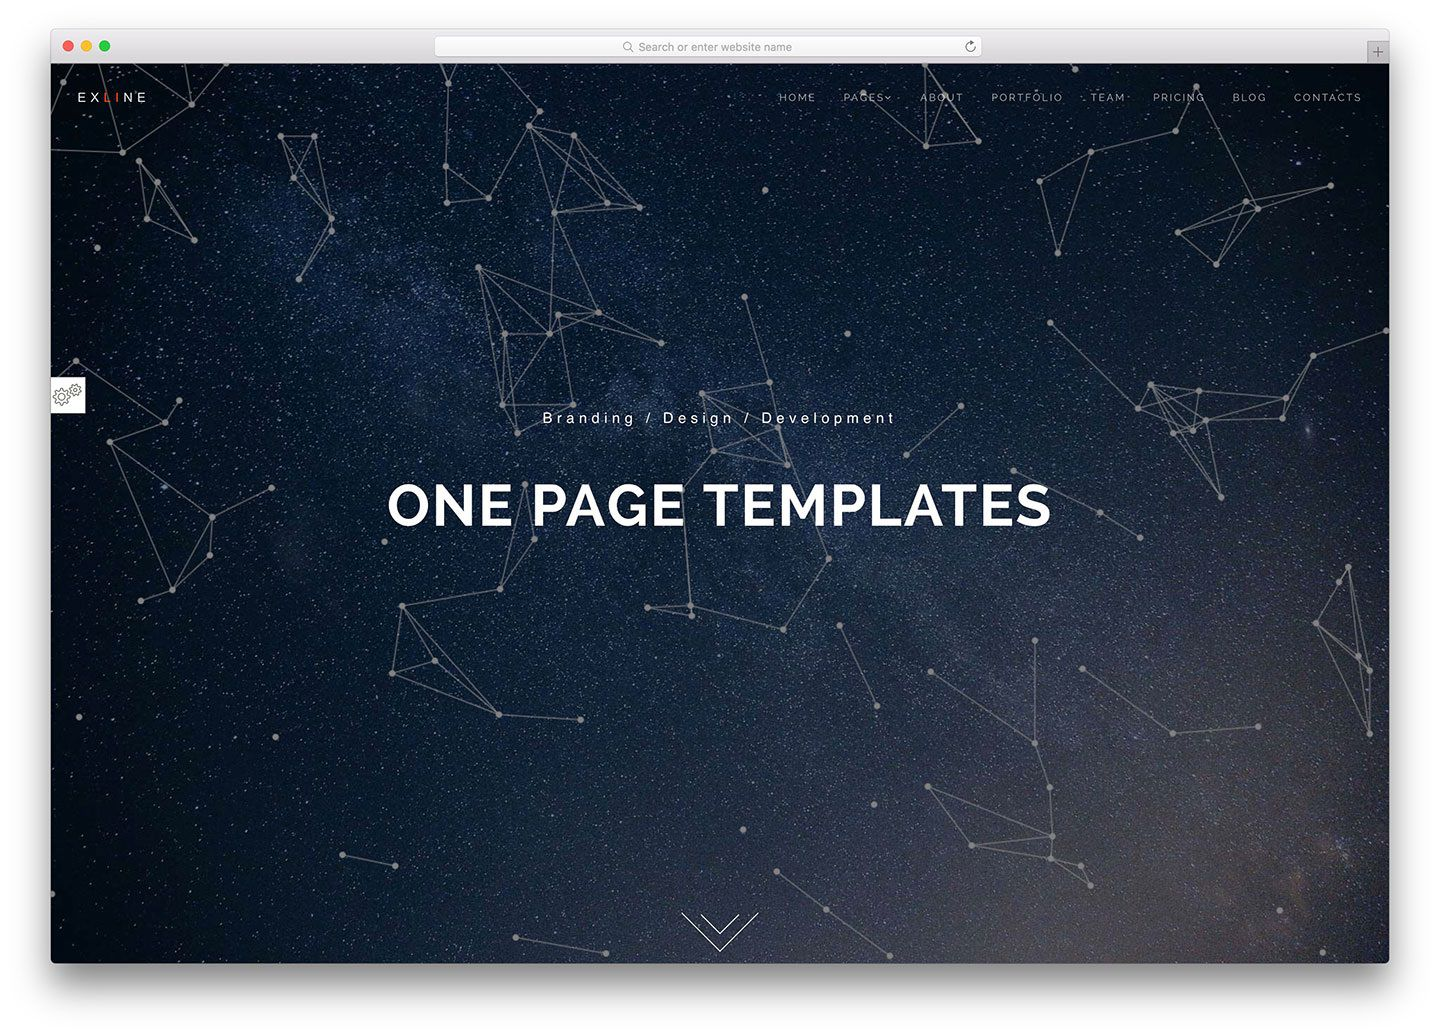 008 Archaicawful One Page Website Template Free Download Bootstrap Photo Full